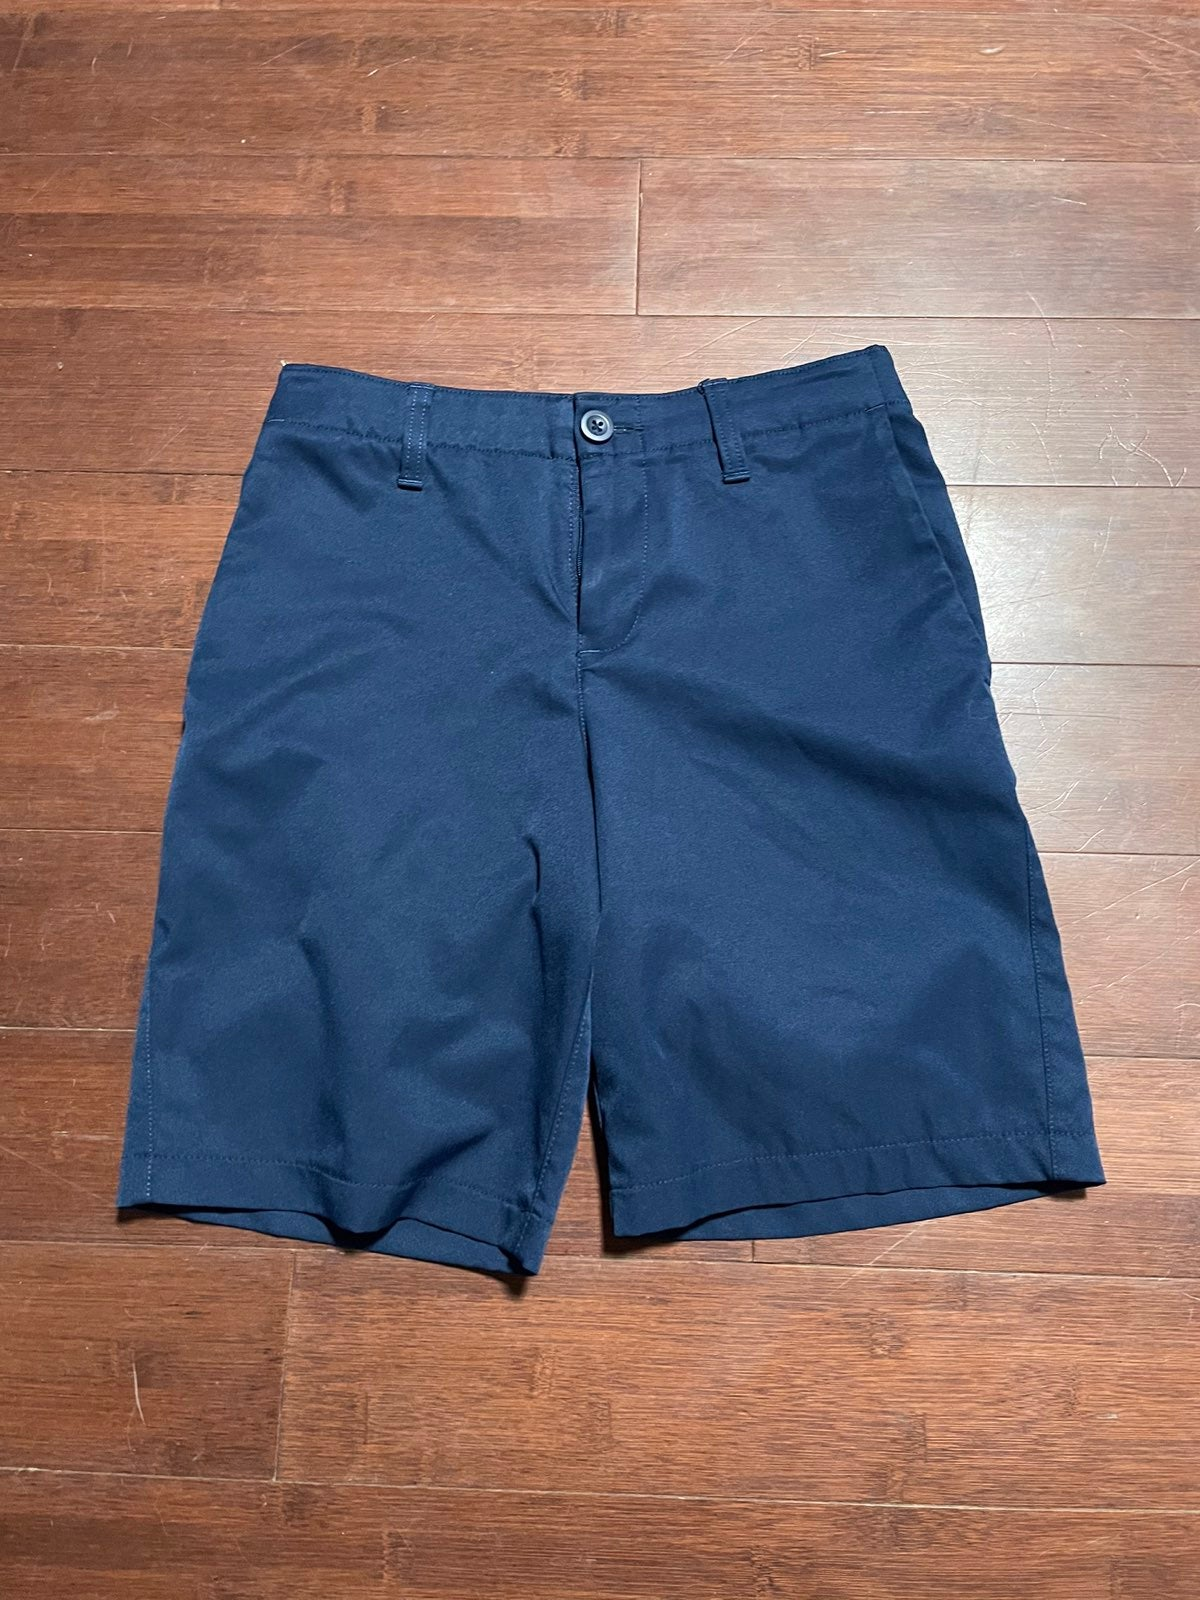 Under Armour shorts 12